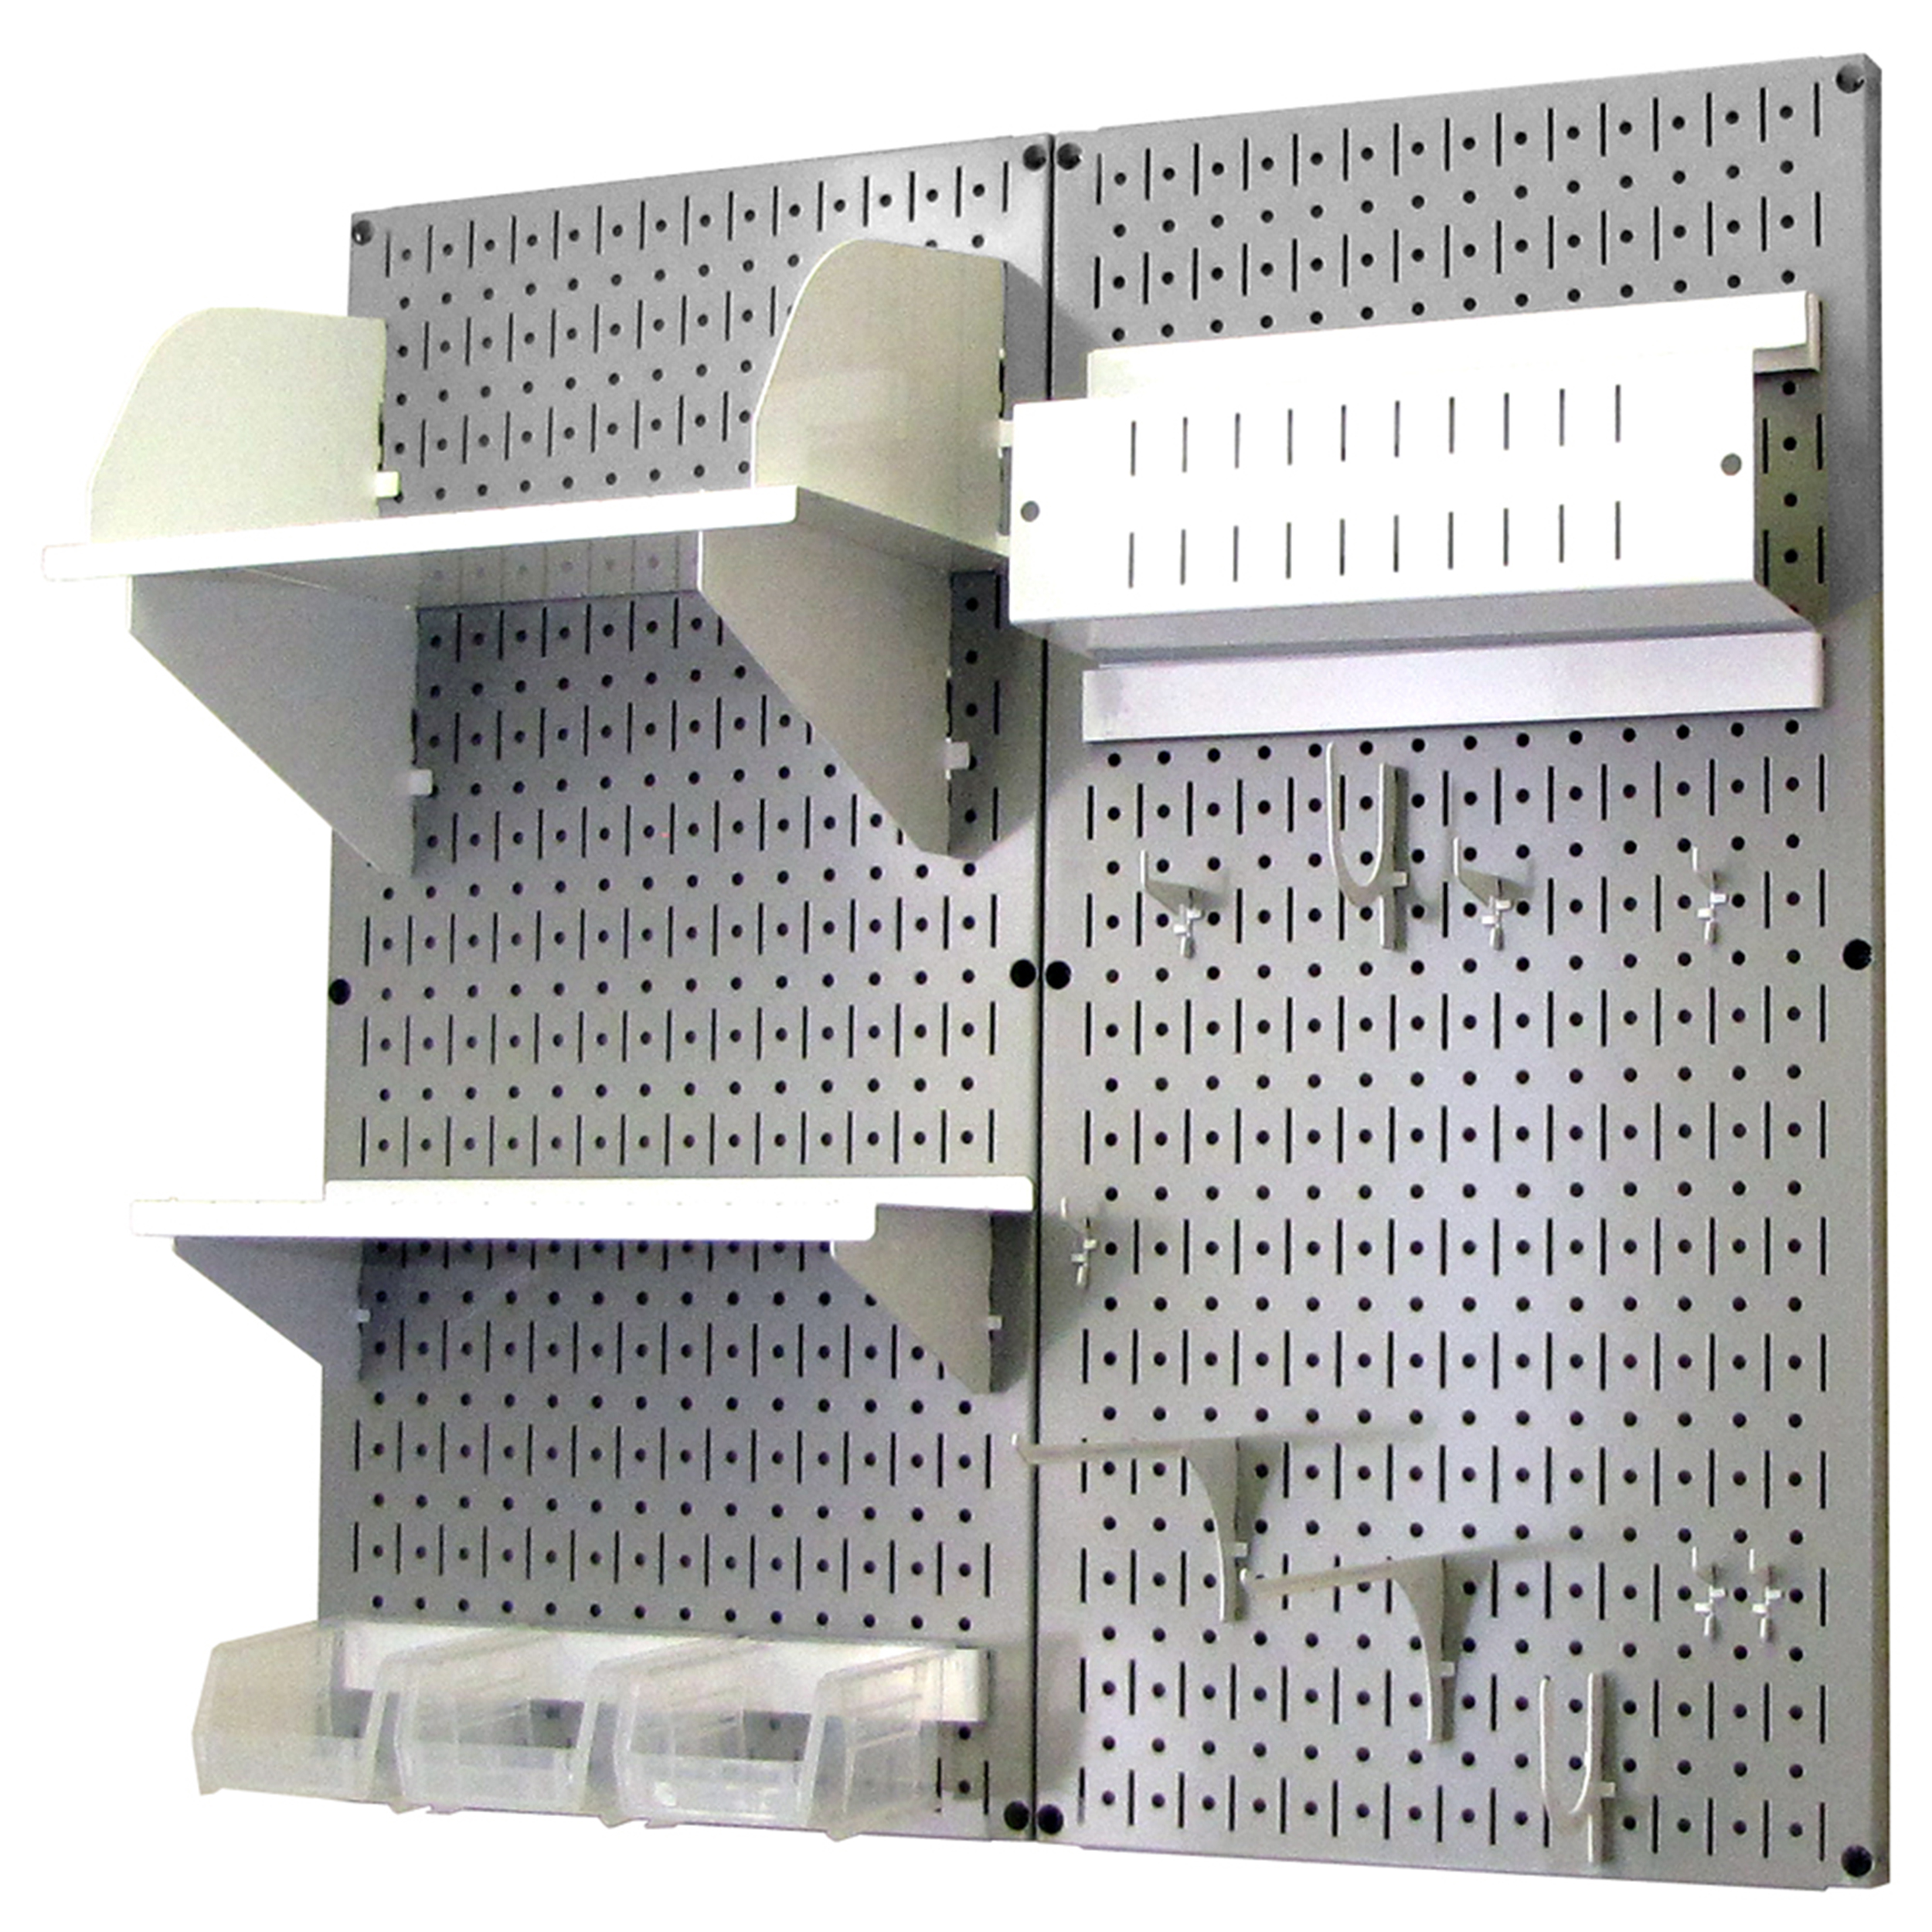 Pegboard Hobby Craft Pegboard Organizer Storage Kit with Gray Pegboard and White Accessories